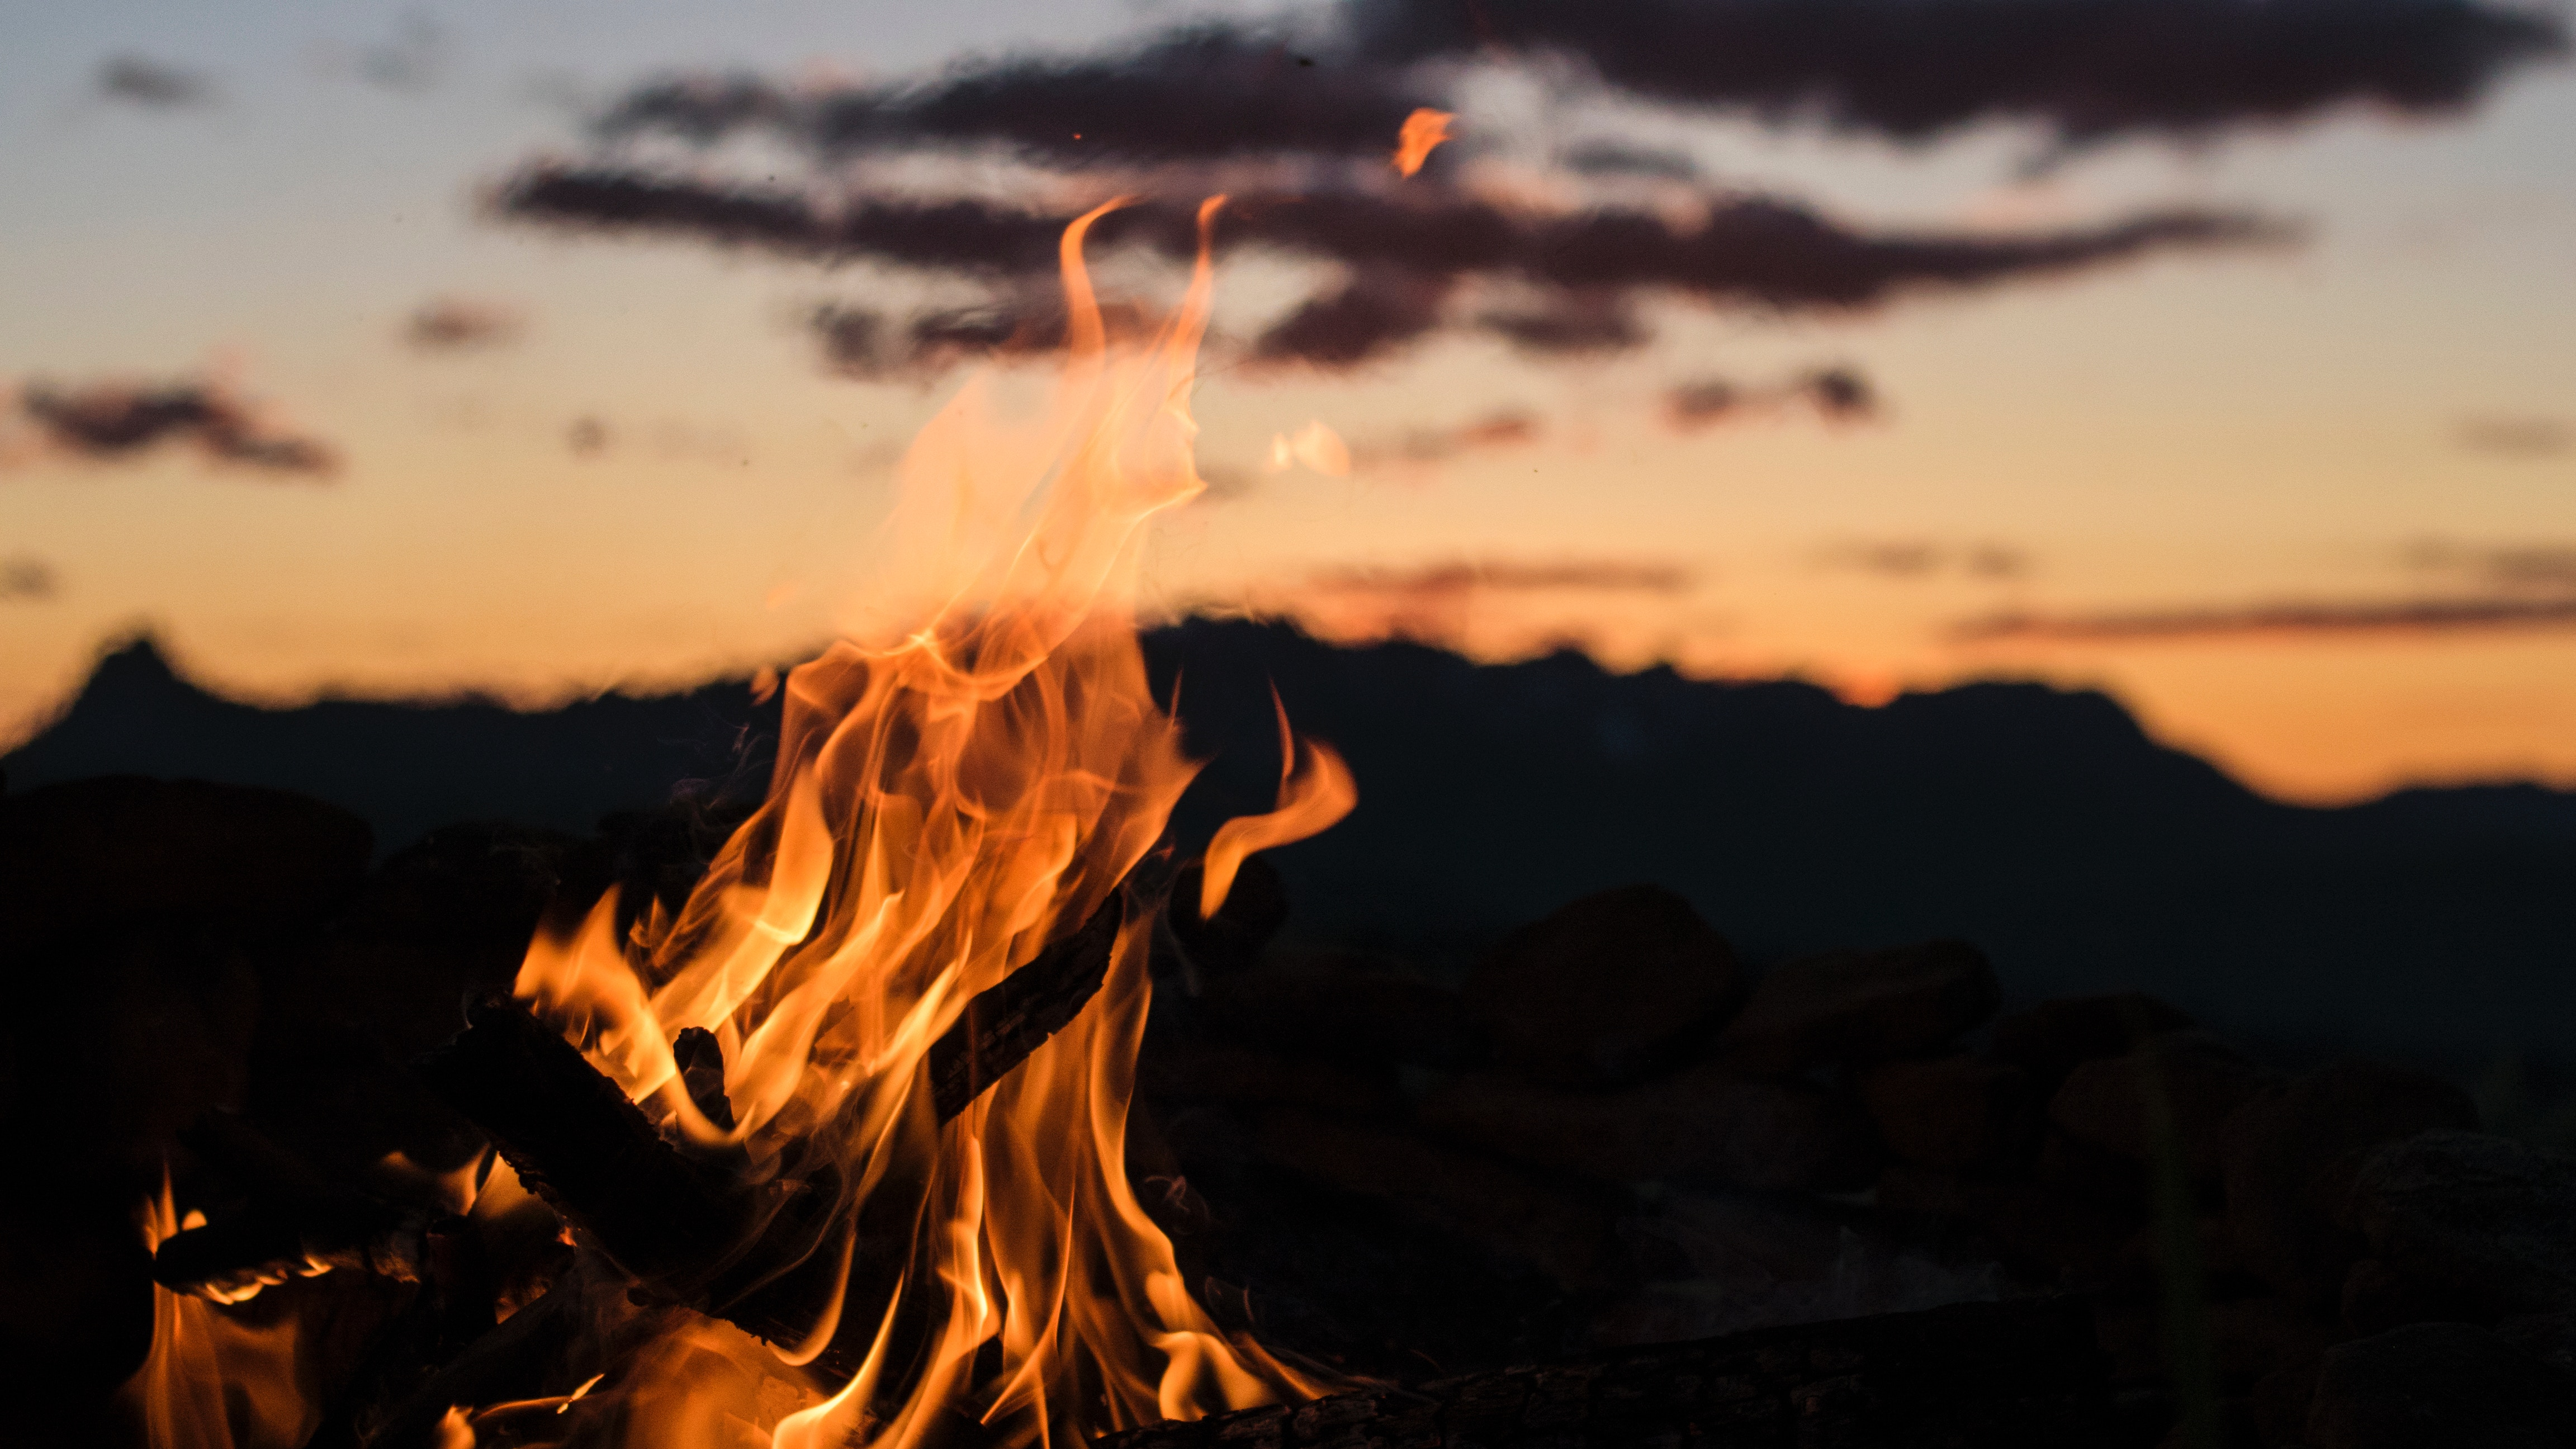 92423 Screensavers and Wallpapers Bonfire for phone. Download Fire, Bonfire, Night, Dark, Flame, Blur, Smooth pictures for free